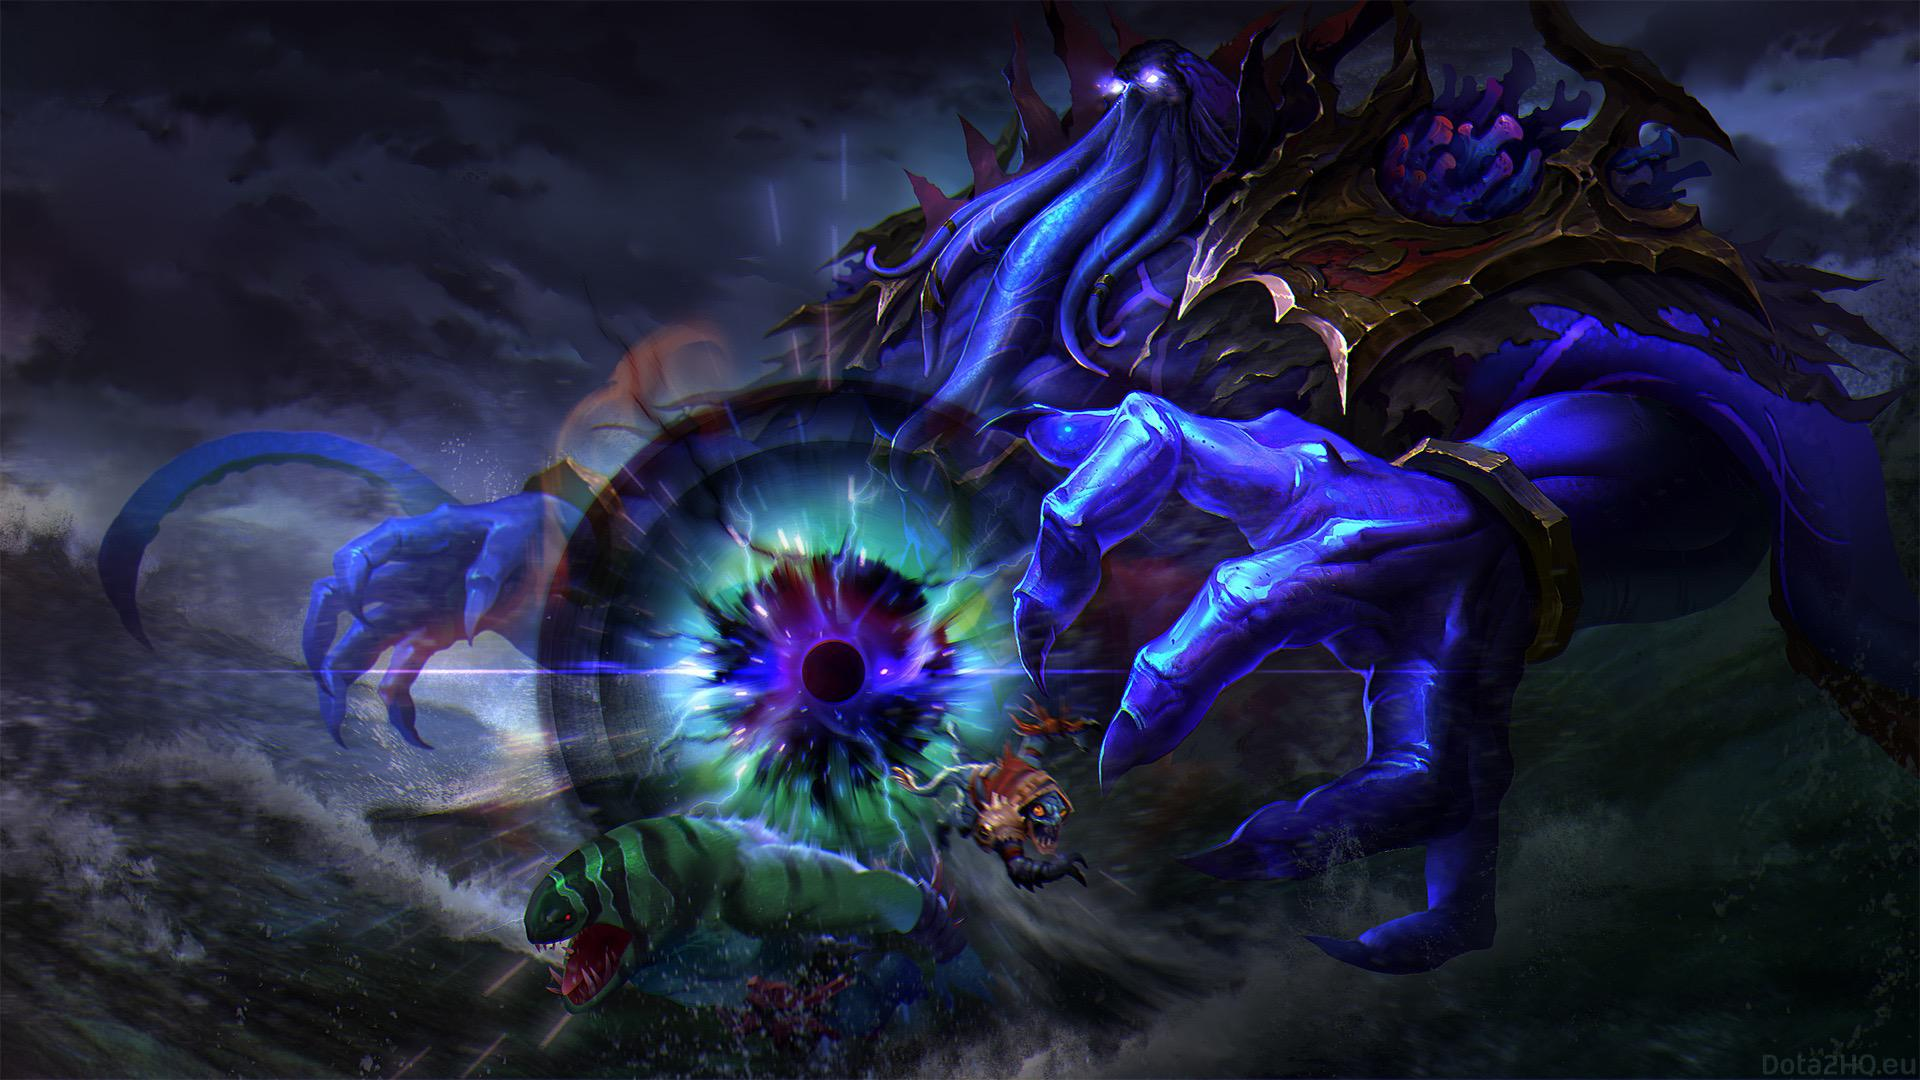 93 Amazing Dota 2 Hd Wallpapers For Your Pc Dmarket Blog